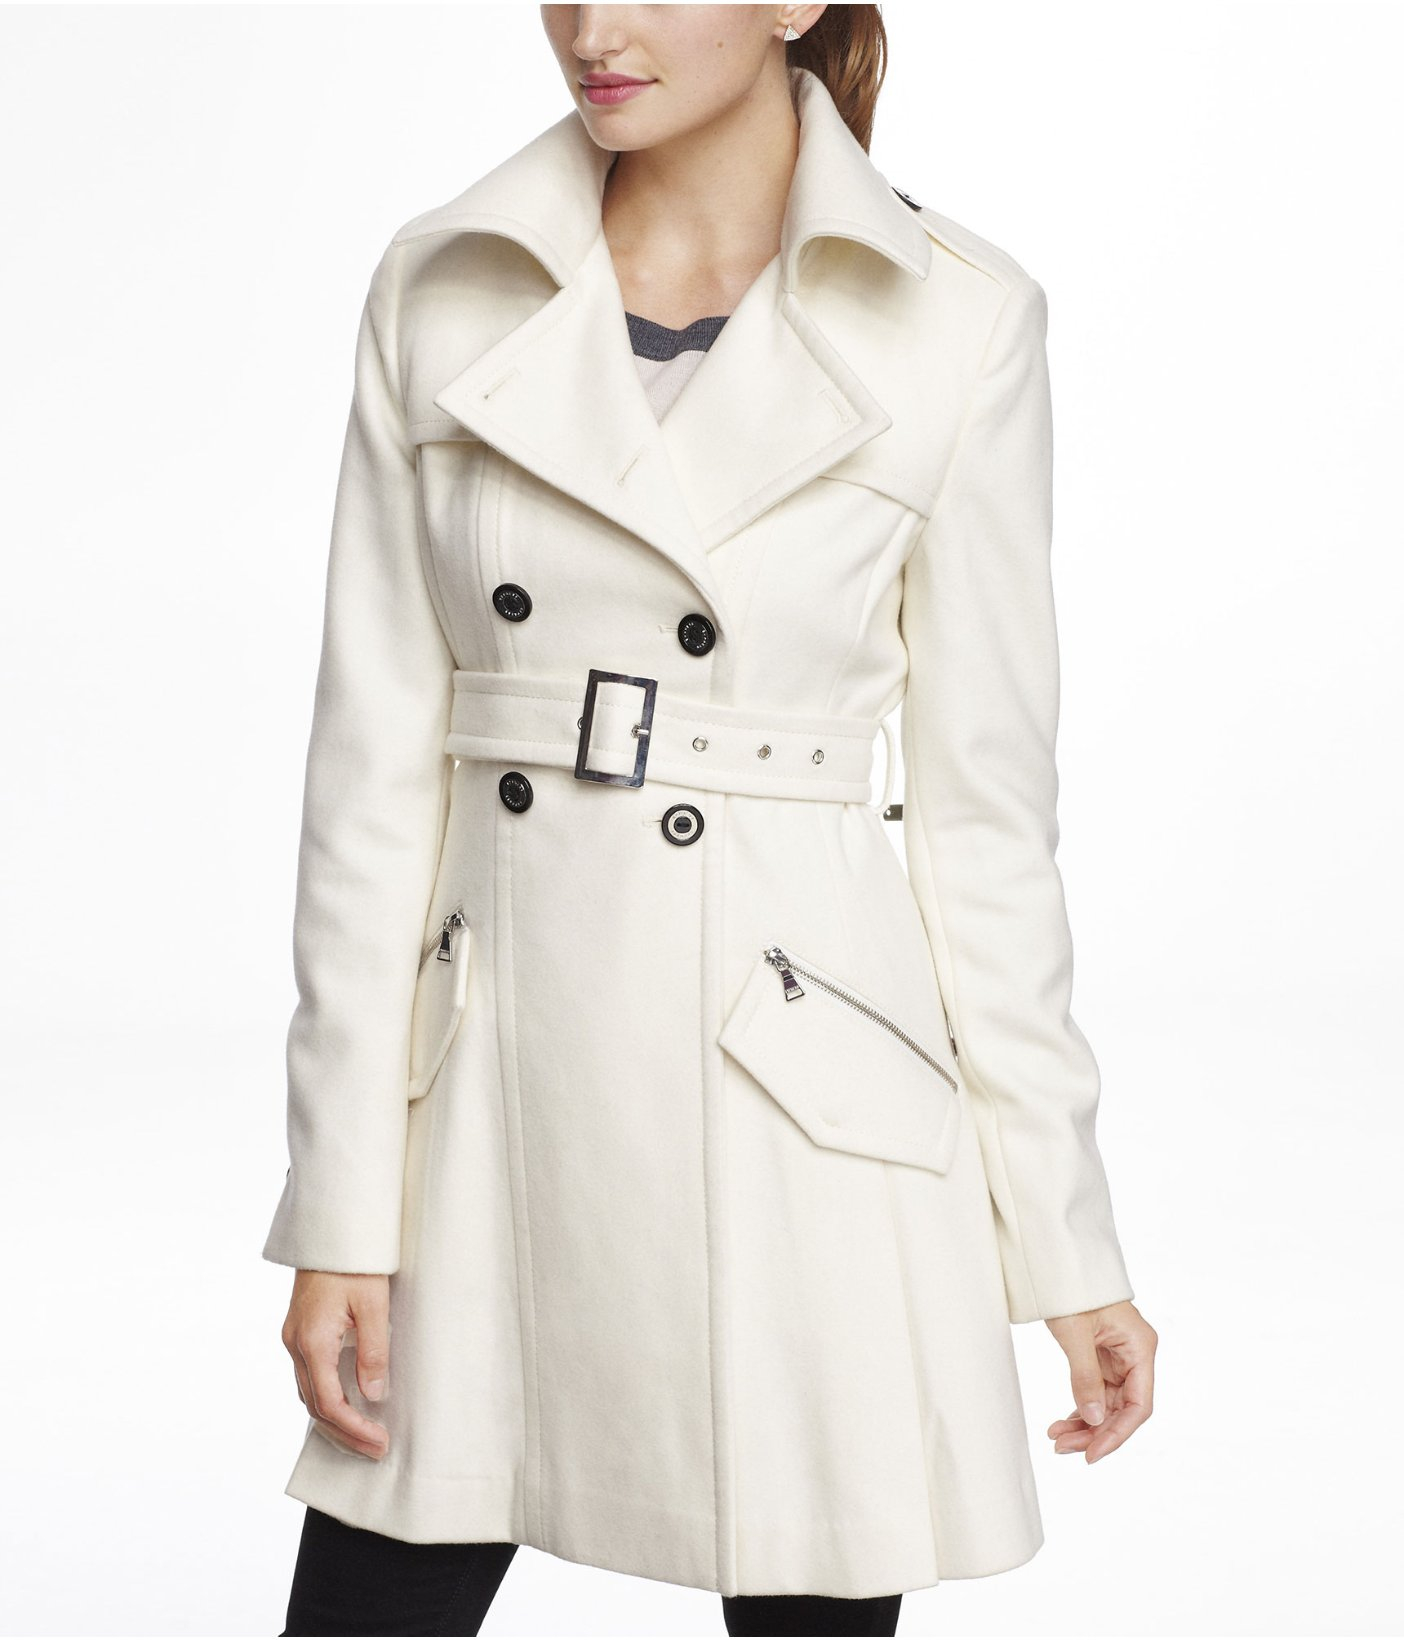 Express Wool Blend Fit and Flare Trench Coat in Natural | Lyst